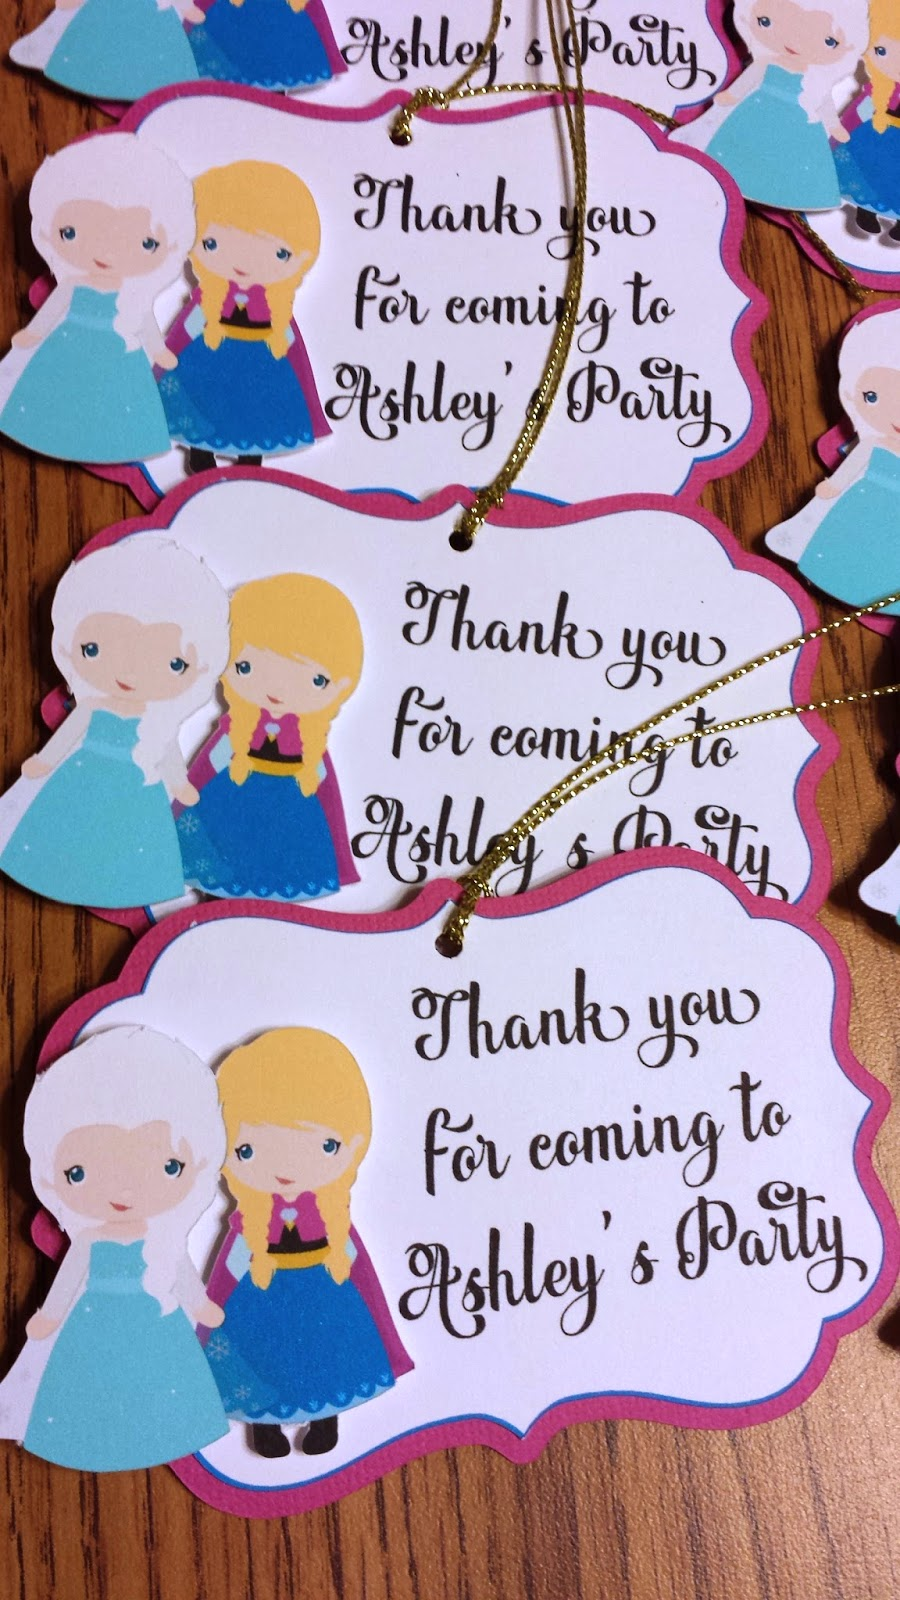 frozen_banner, gift_tags